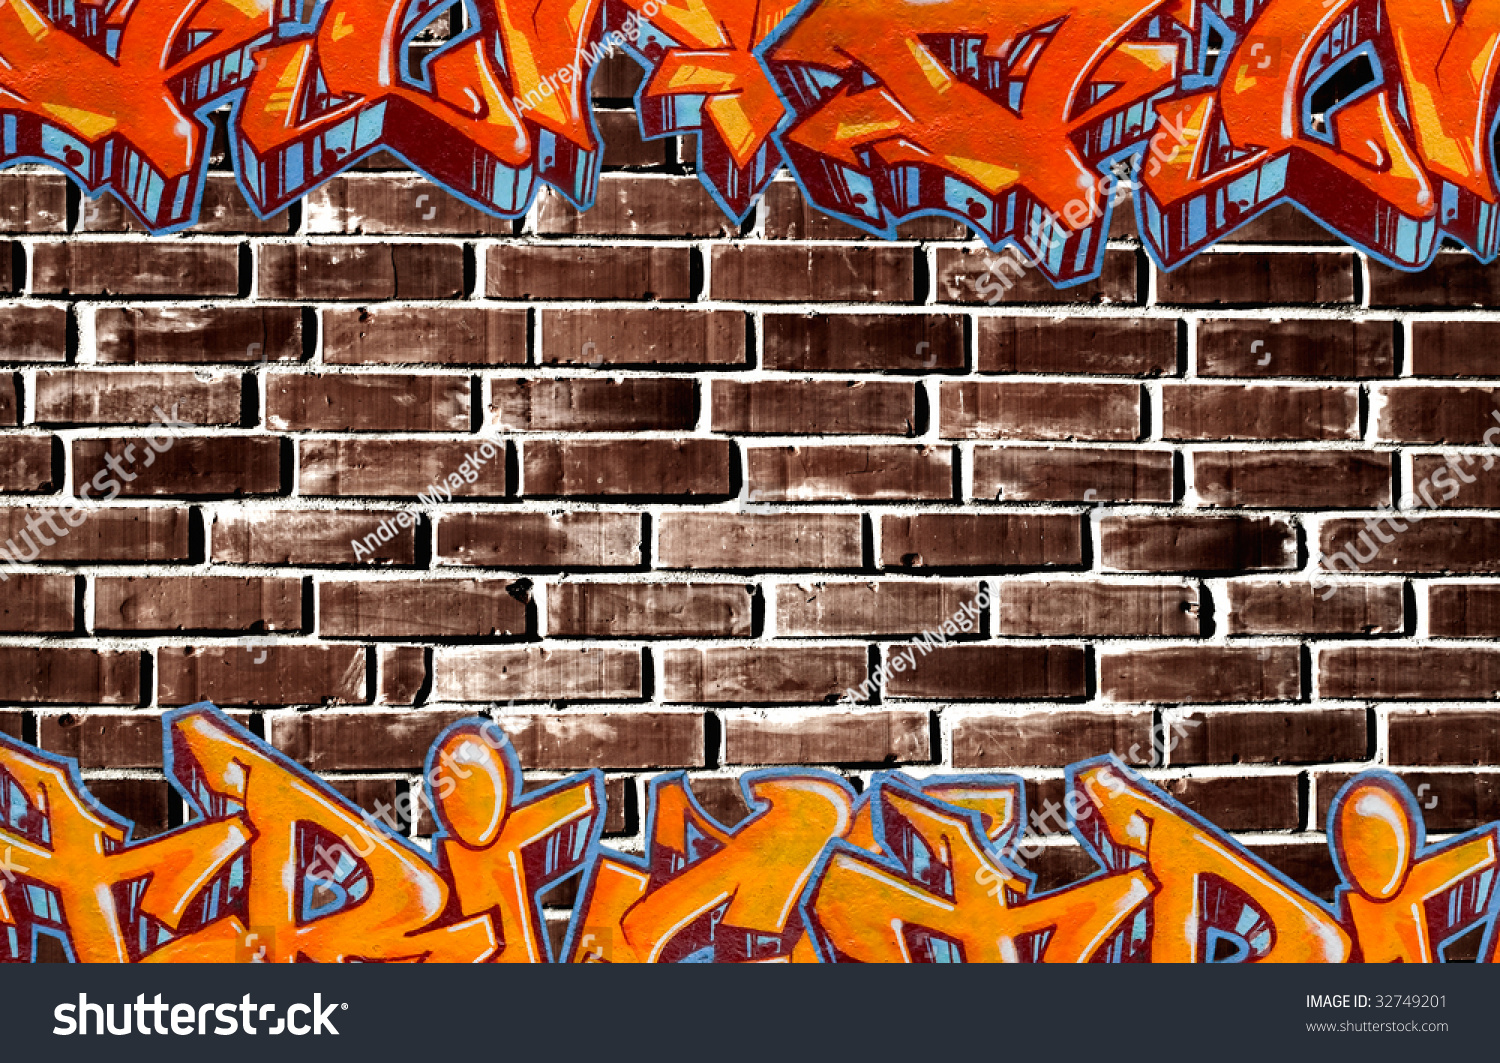 Im C A Genes De La Virgen Mar C Ada En Dibujos together with Stock Photo Graffiti Wall moreover Sparkle   Hd Magic Sparkles Fairy Dust Wand Particle Trail Gold Silver Hd Stock Video Clip additionally Tailor Measuring Tape Stock Photo additionally . on number line clip art